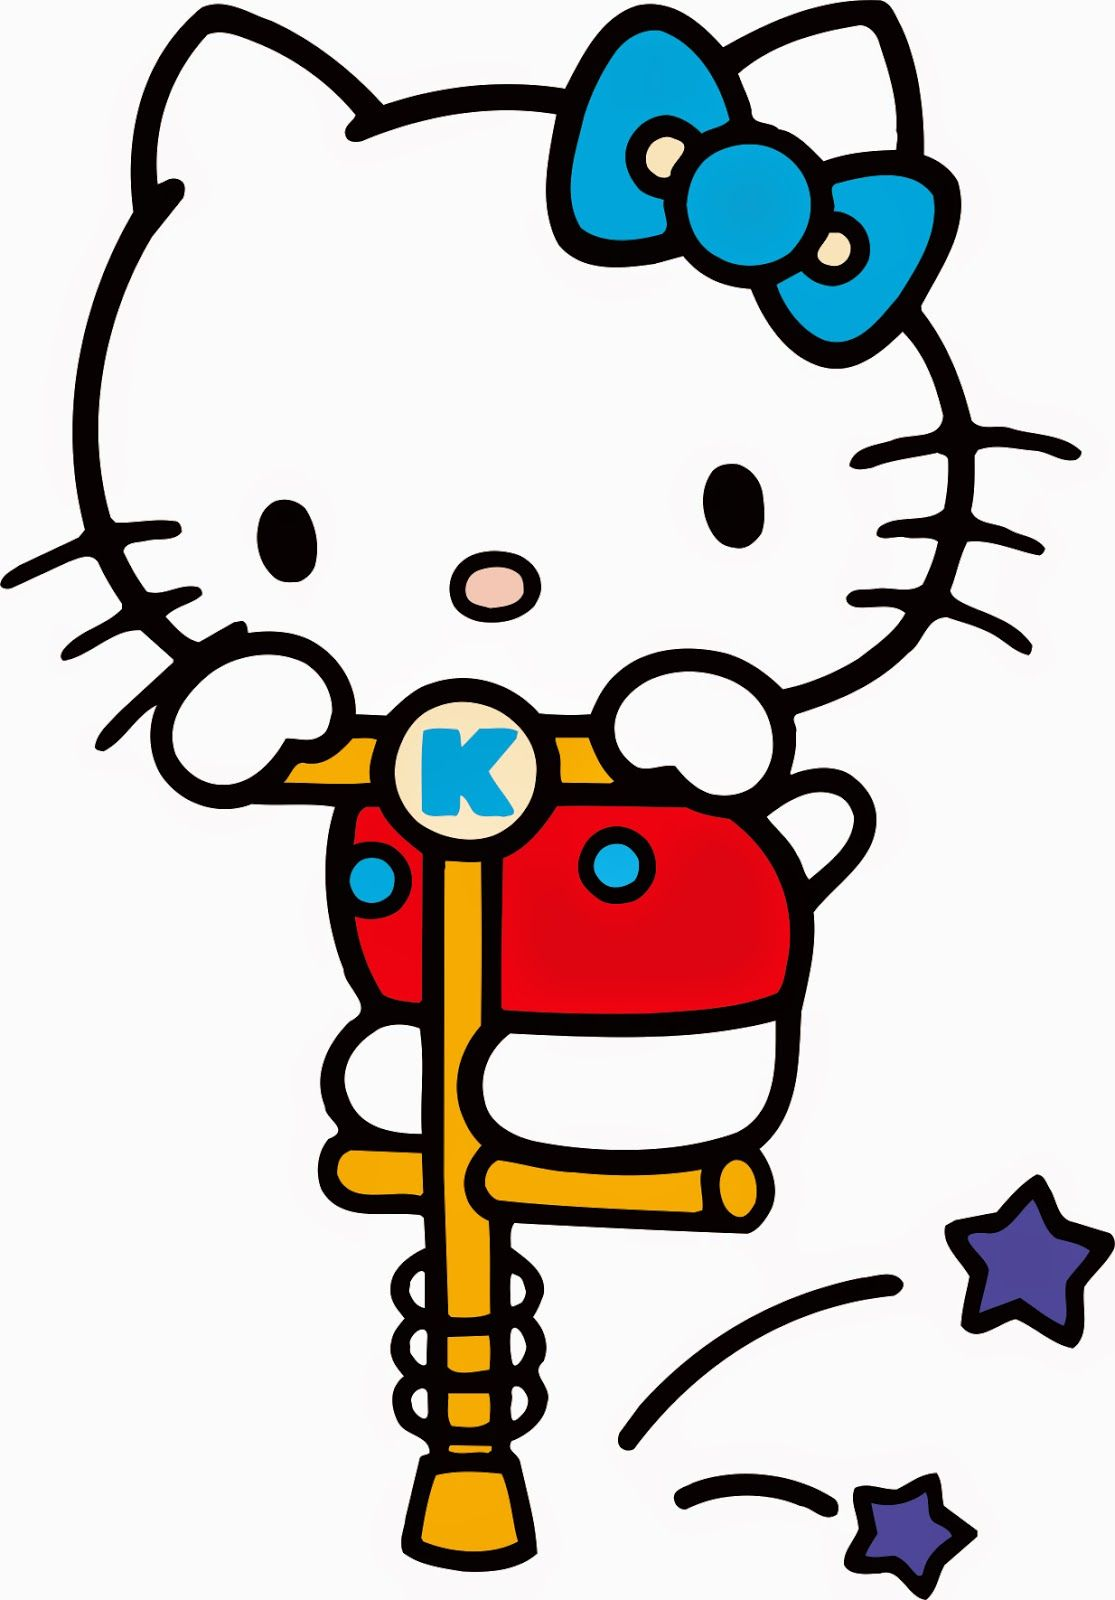 Pin de Becca Lee en Hello Kitty | Pinterest | Gato